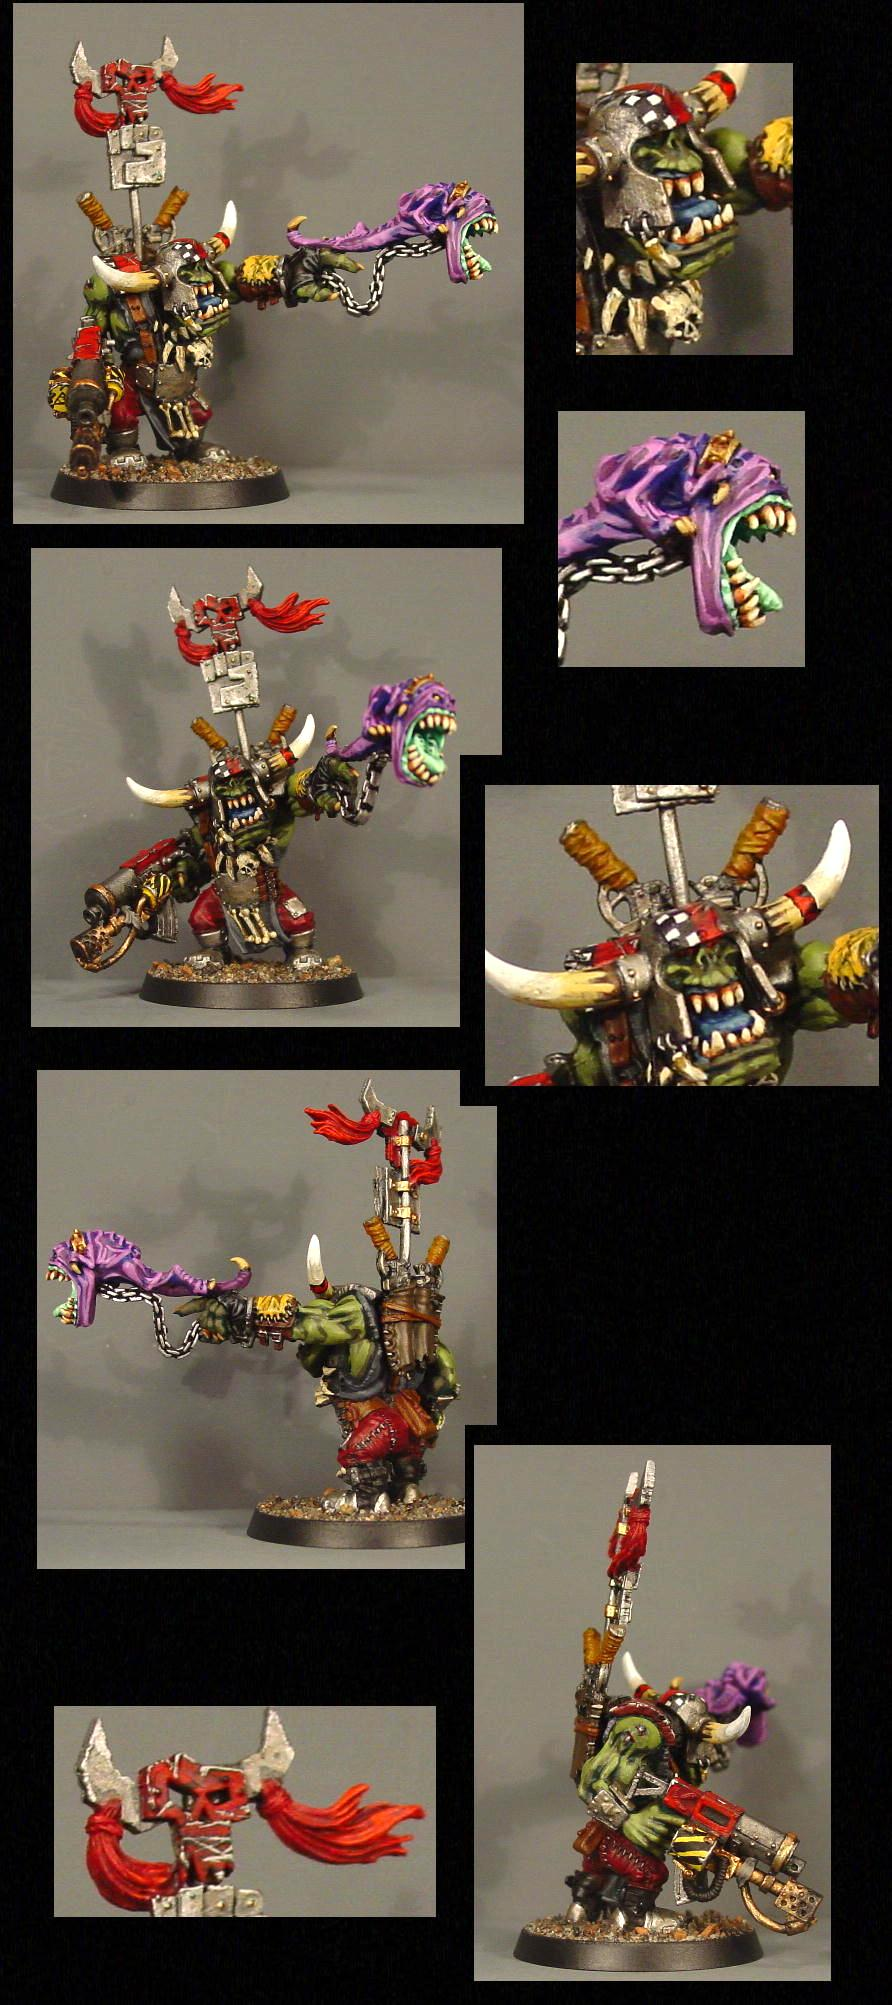 Attack Squig, Orcs, Orks, Warboss, Warhammer 40,000